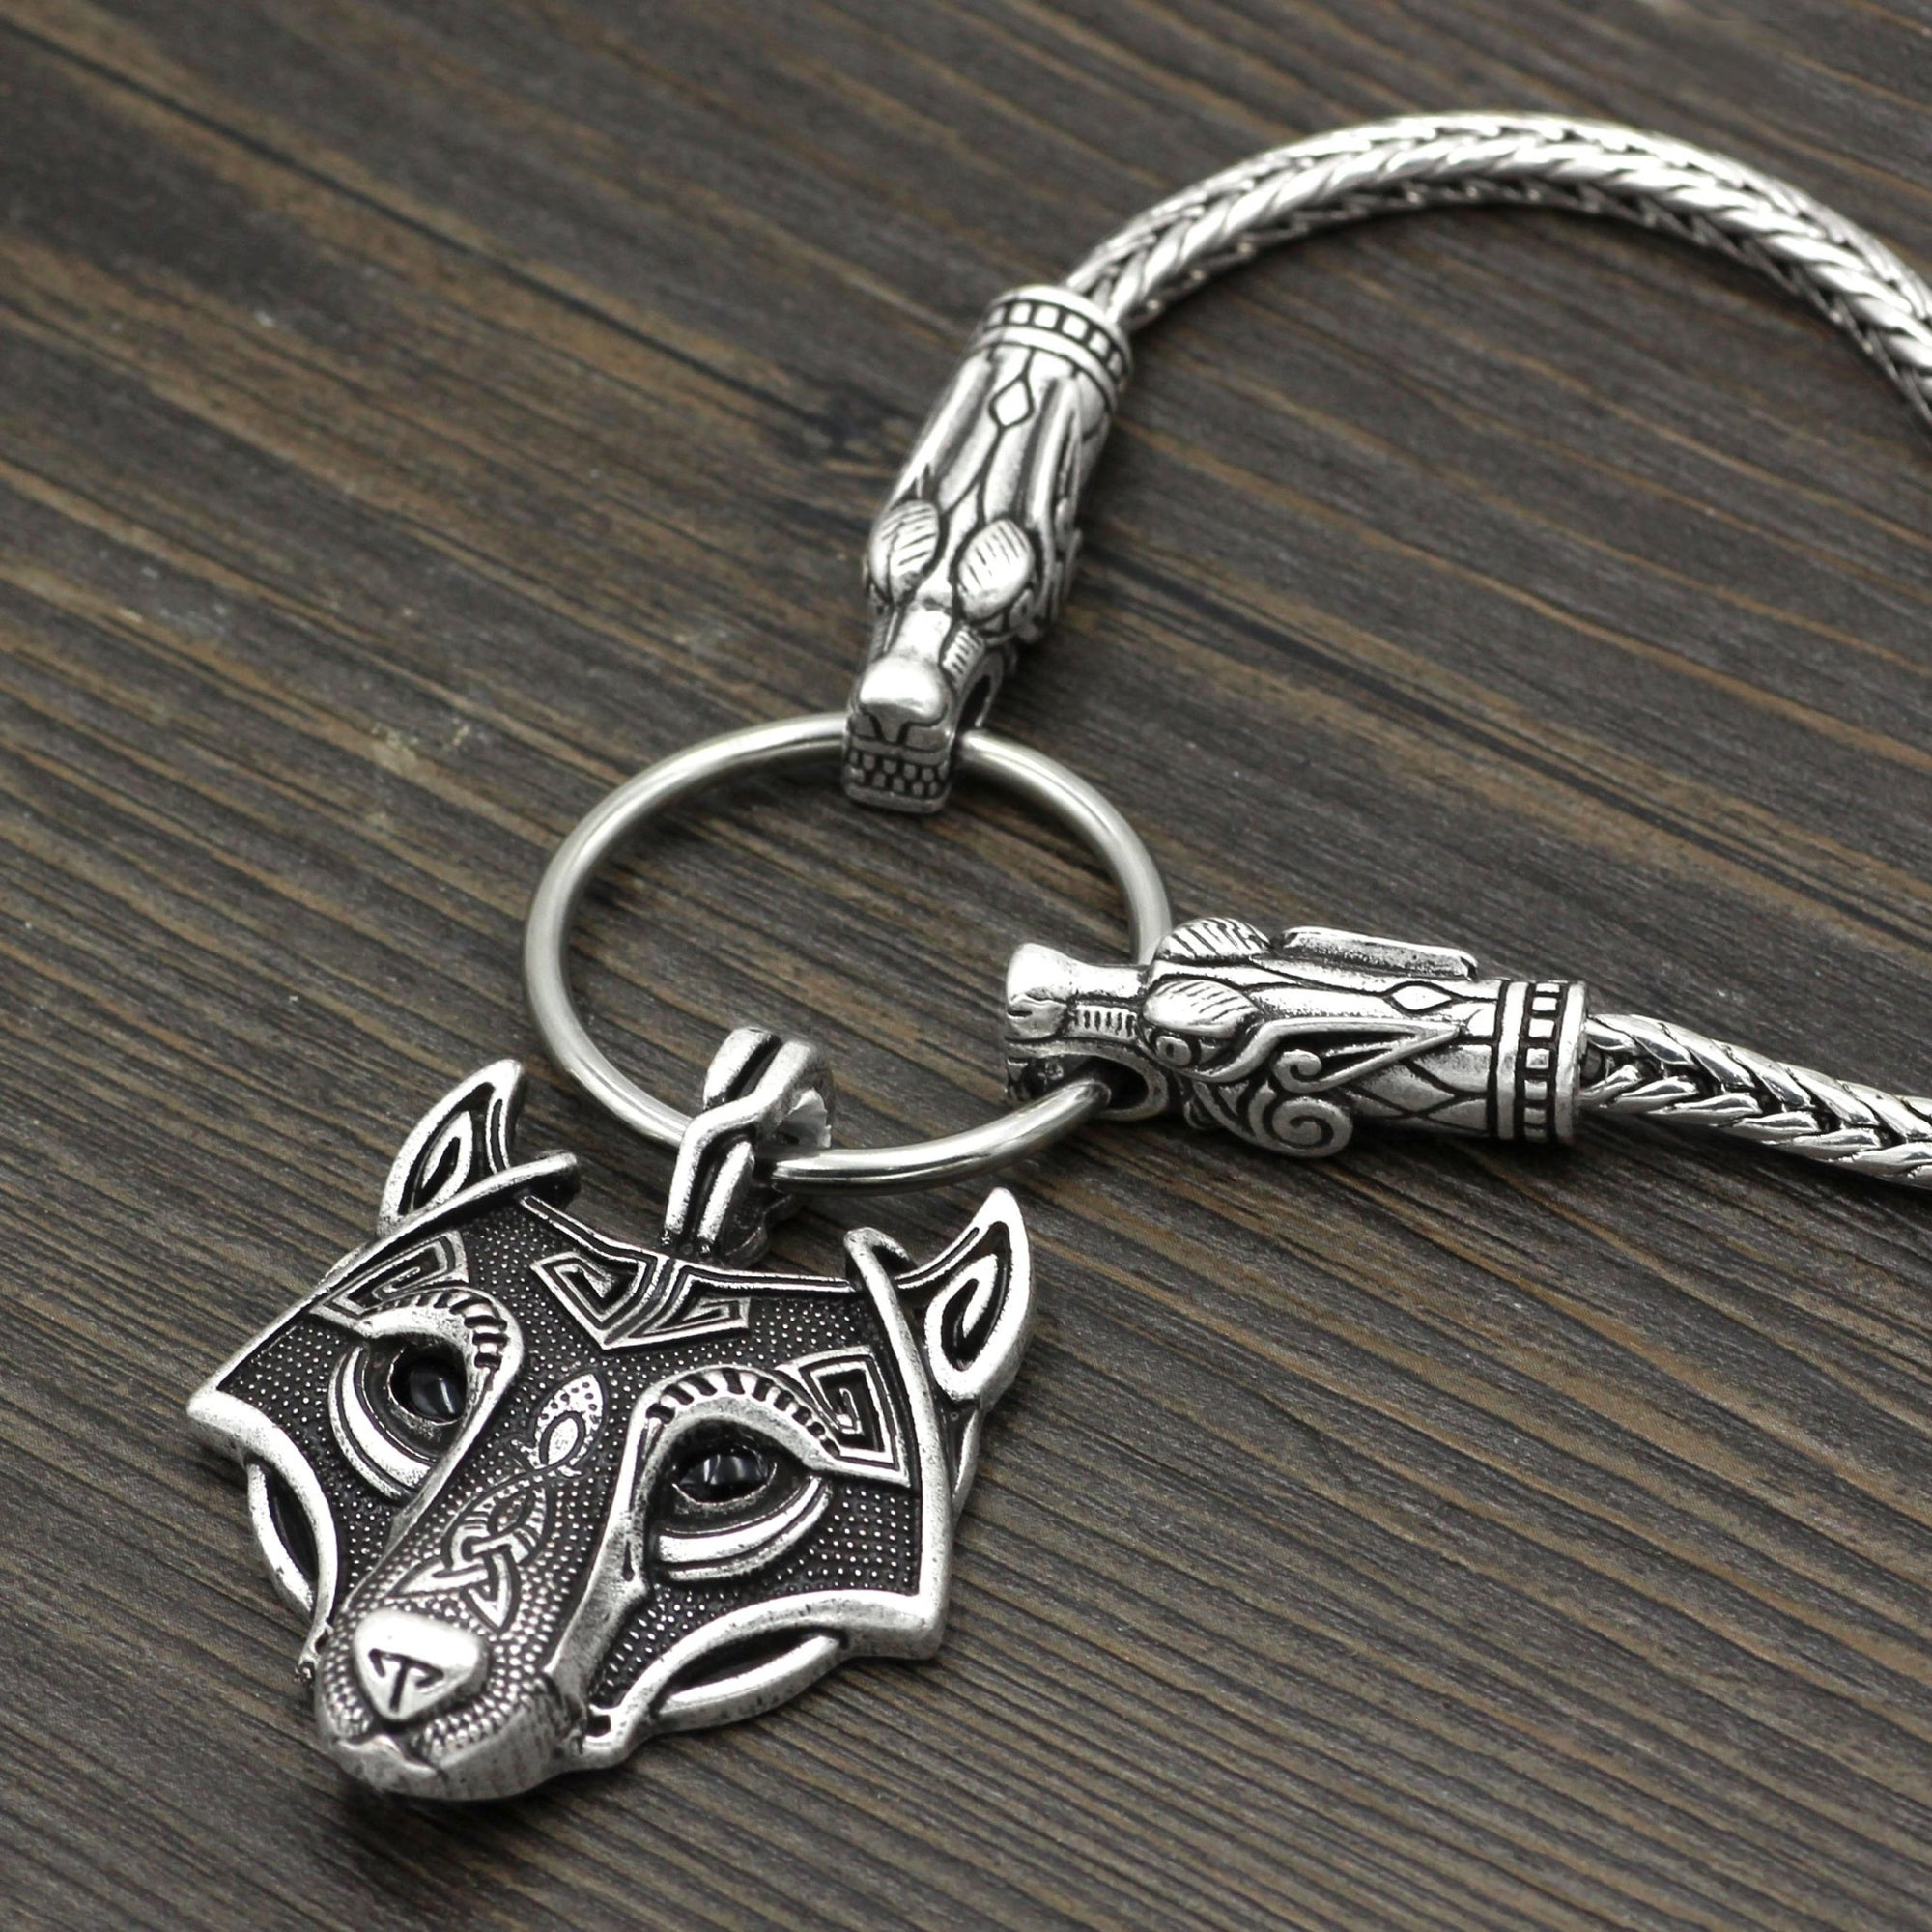 King's Chain Necklace with Wolf Head Beads and Wolf Head Pendant - VikingsBrand